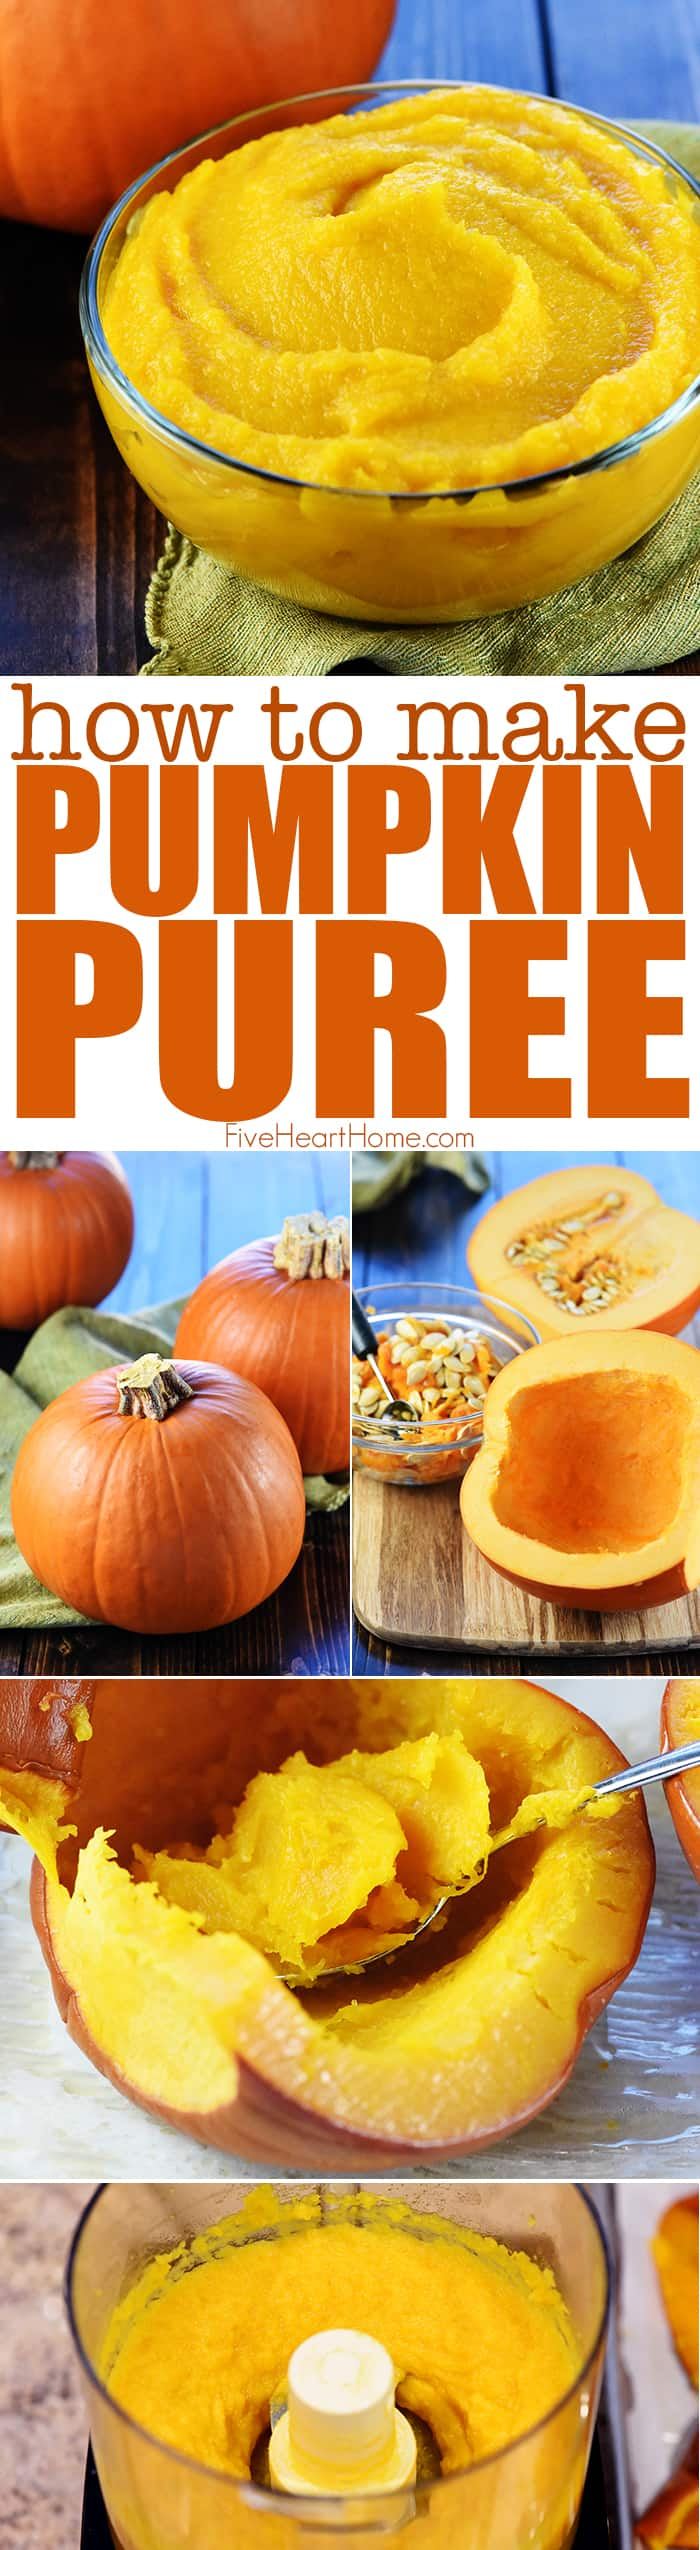 Homemade Pumpkin Puree Recipe ~ step-by-step directions for how to make pumpkin puree...it's easy to make this healthy and delicious base for all of your favorite pumpkin recipes! | FiveHeartHome.com via @fivehearthome